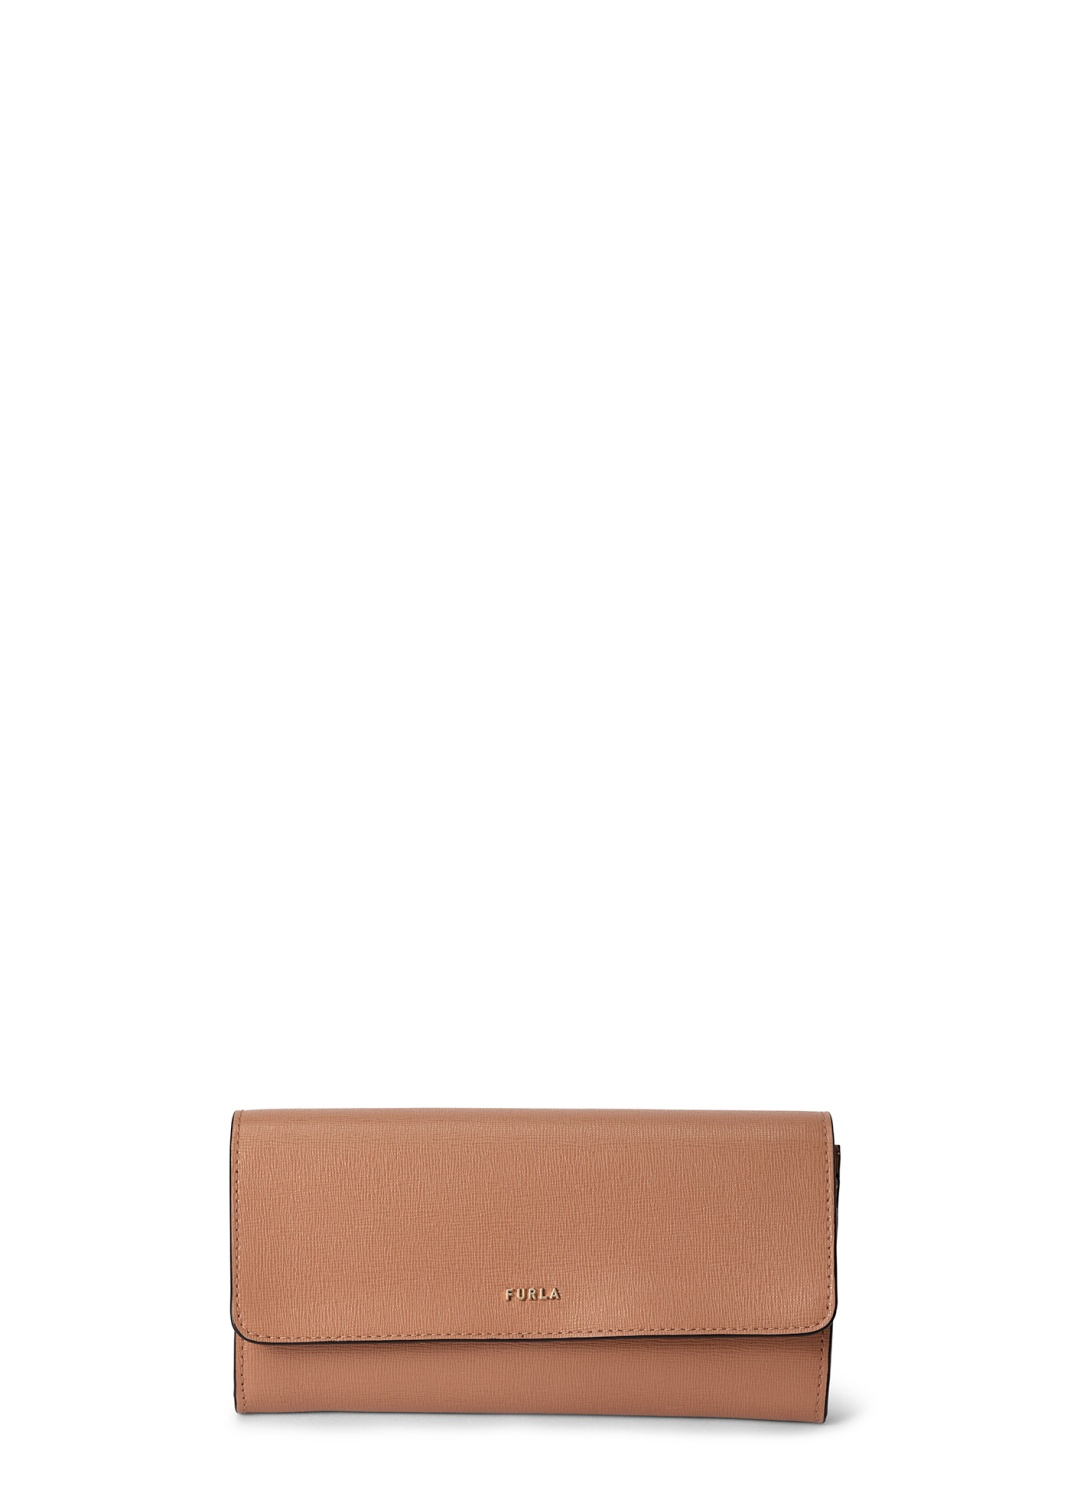 FURLA BABYLON CONTINENTAL WALLET SLIM image number 0